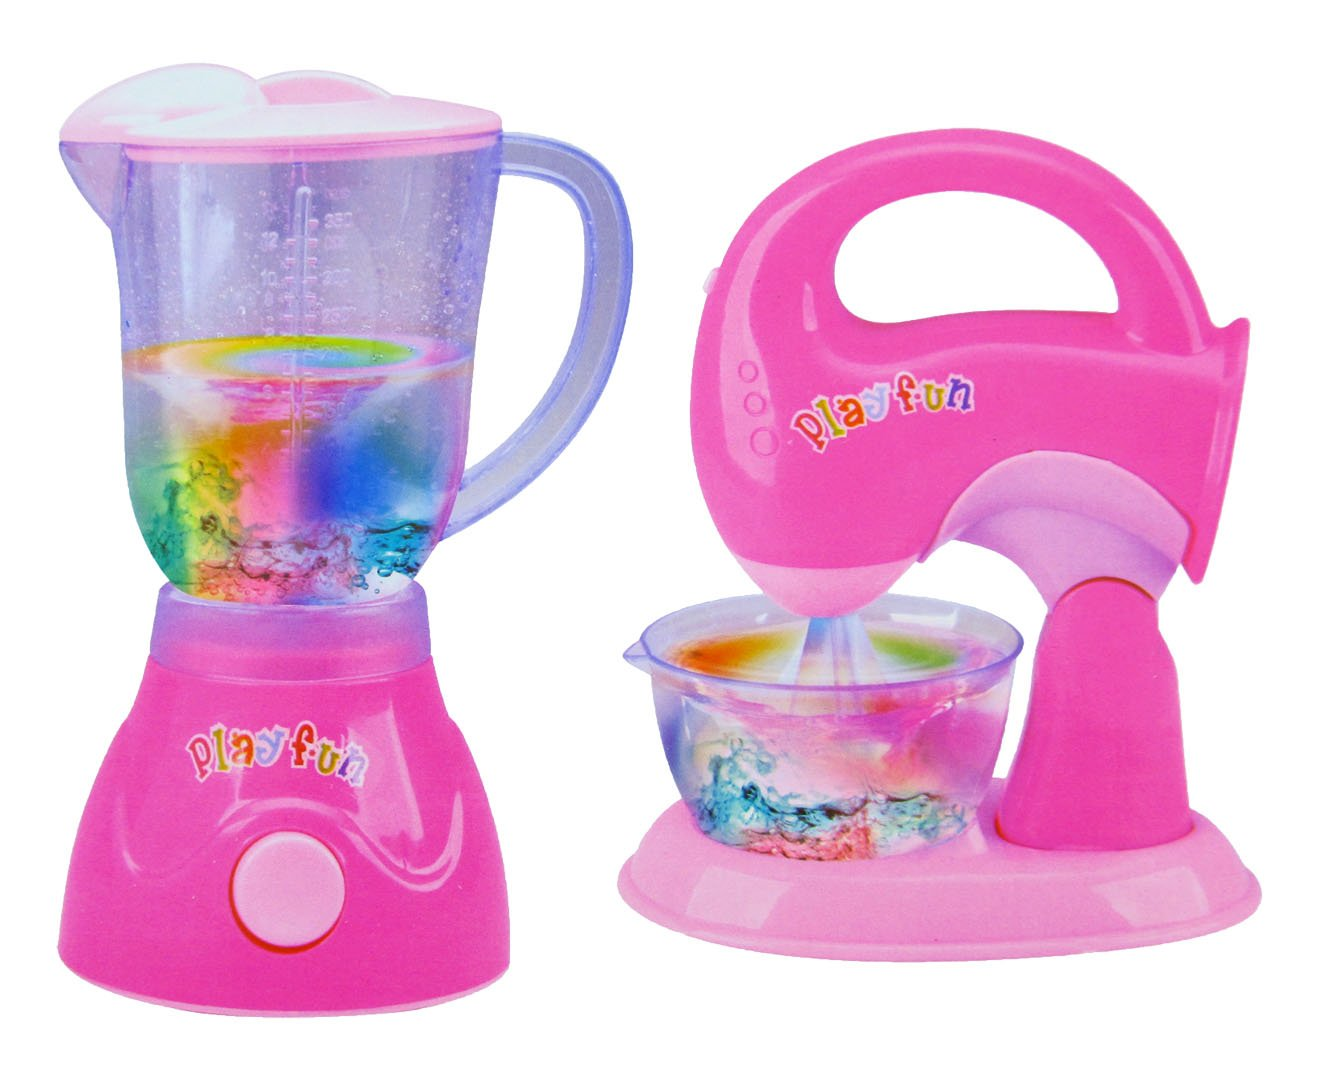 Liberty Imports Pink Blender and Mixer Kitchen Appliances Toy Set for kids with Light Up Swirling Colors